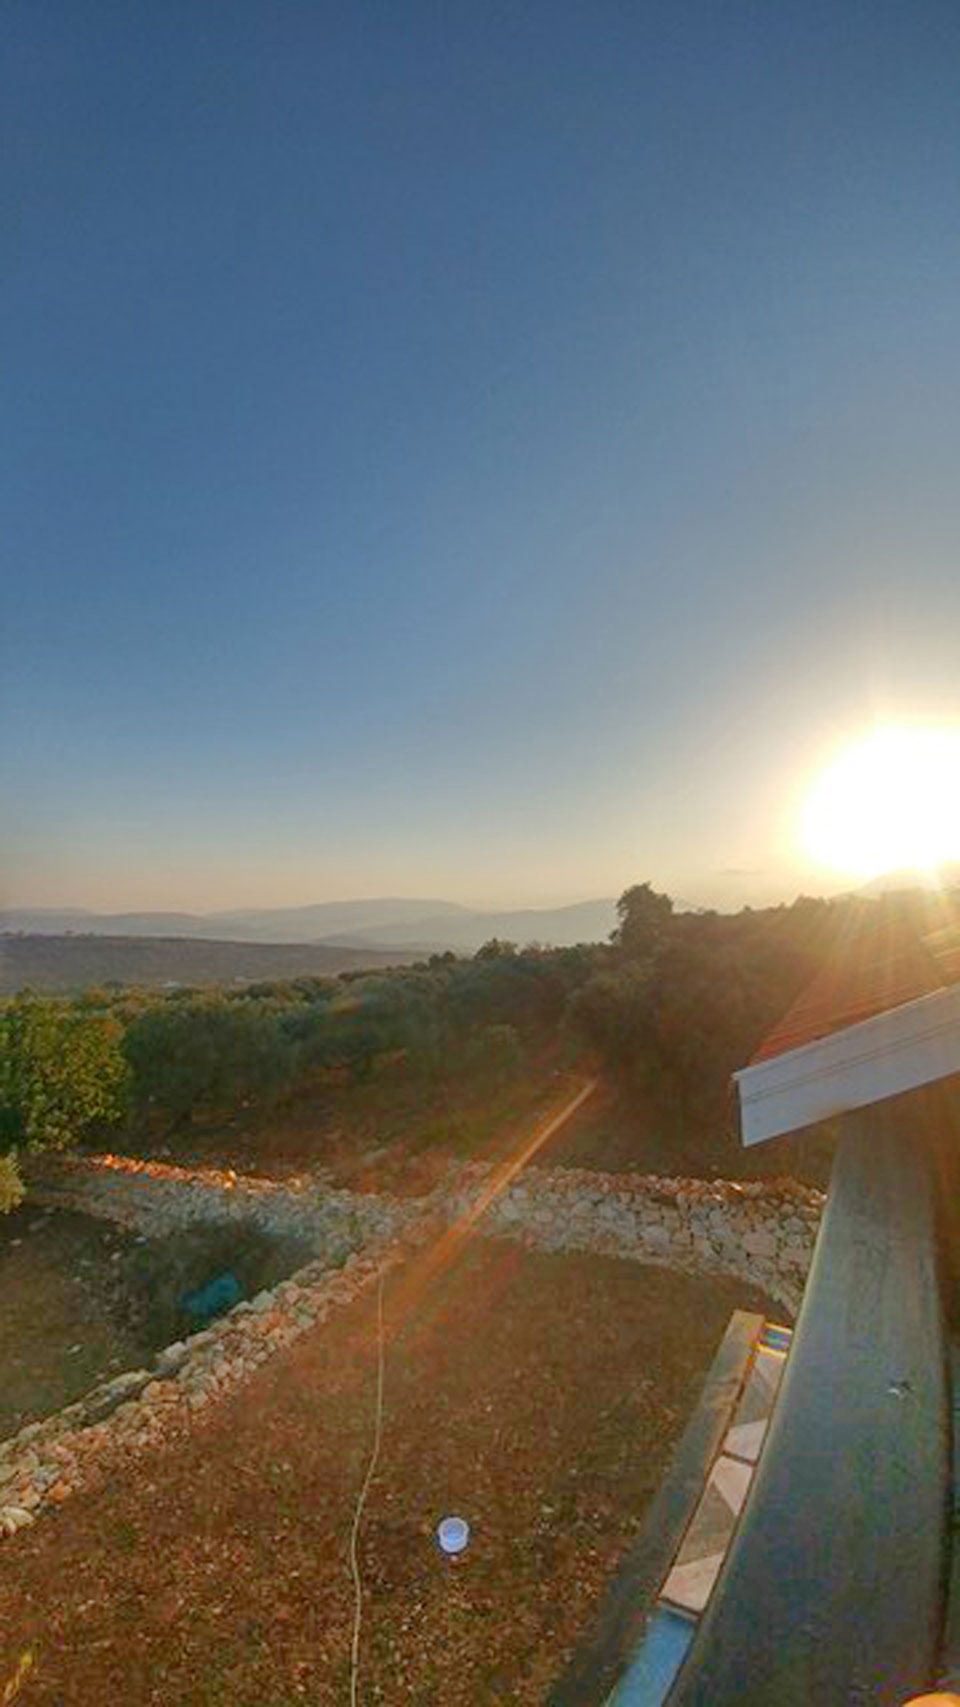 Sunrise from the roof deck at Daily Hugz, Asira al-Shimaliyah, Palestine